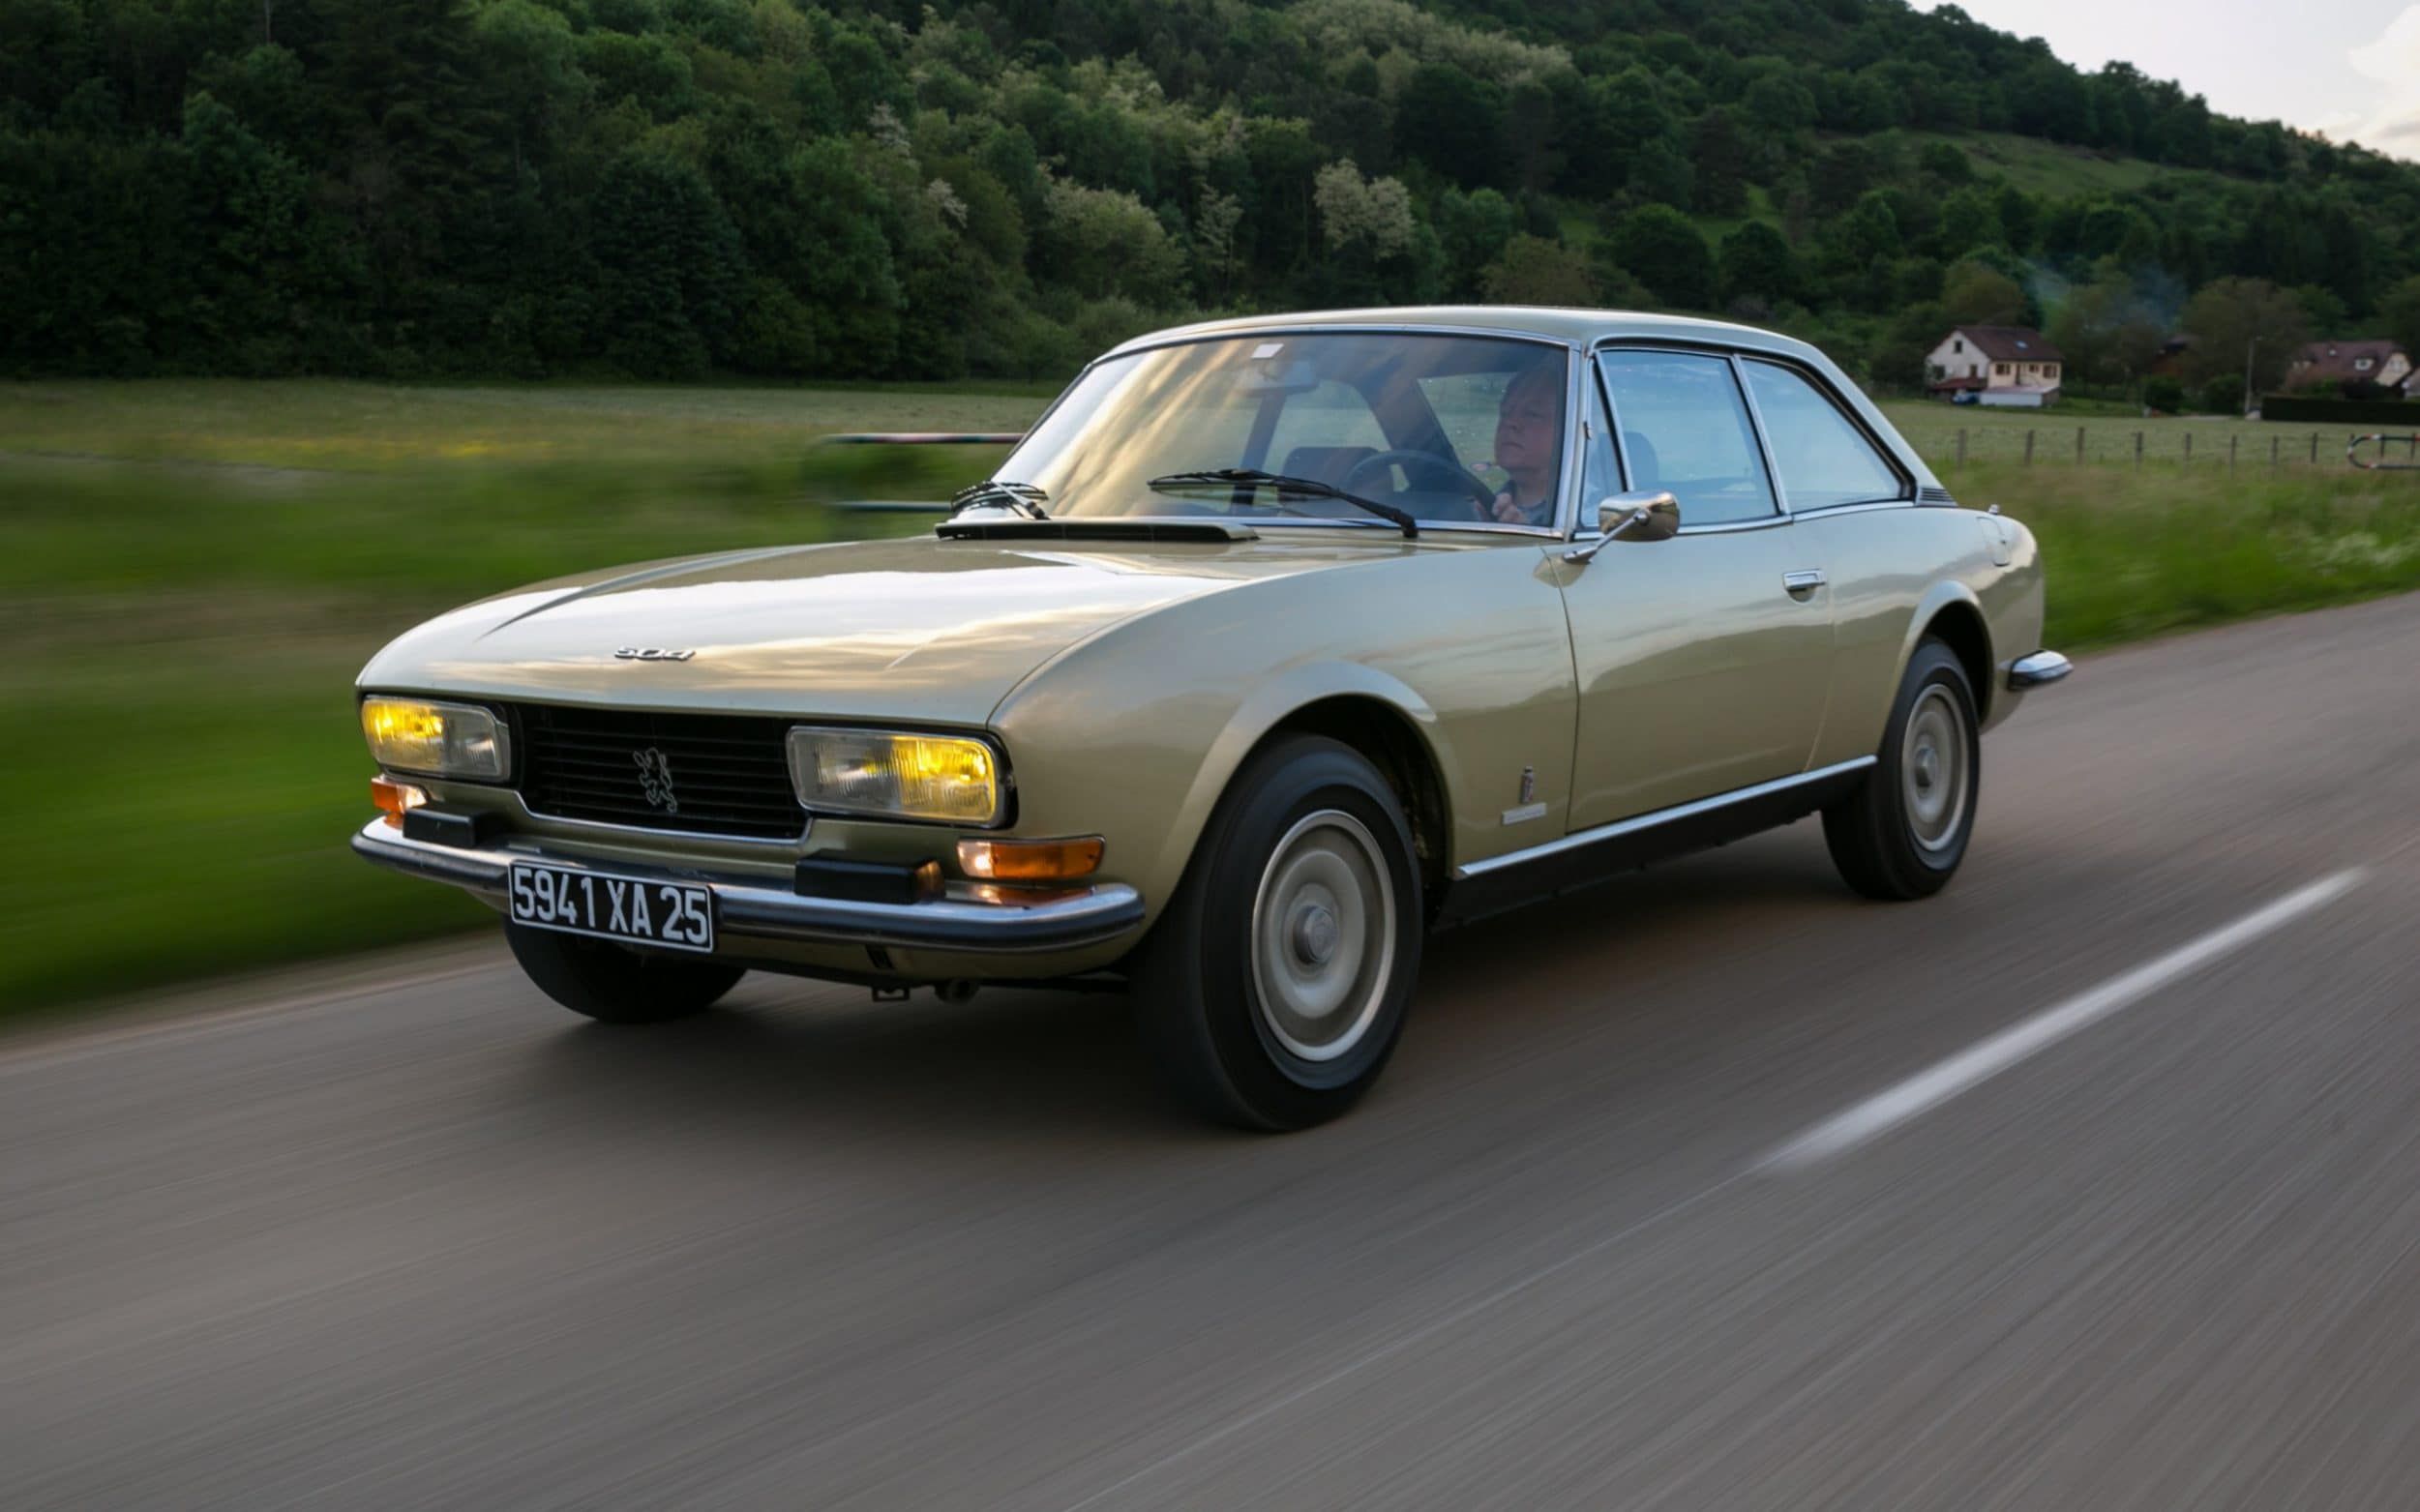 Coupe Peugeot Throwback Thursday Remember The Peugeot 504 Coupé A Smooth Two